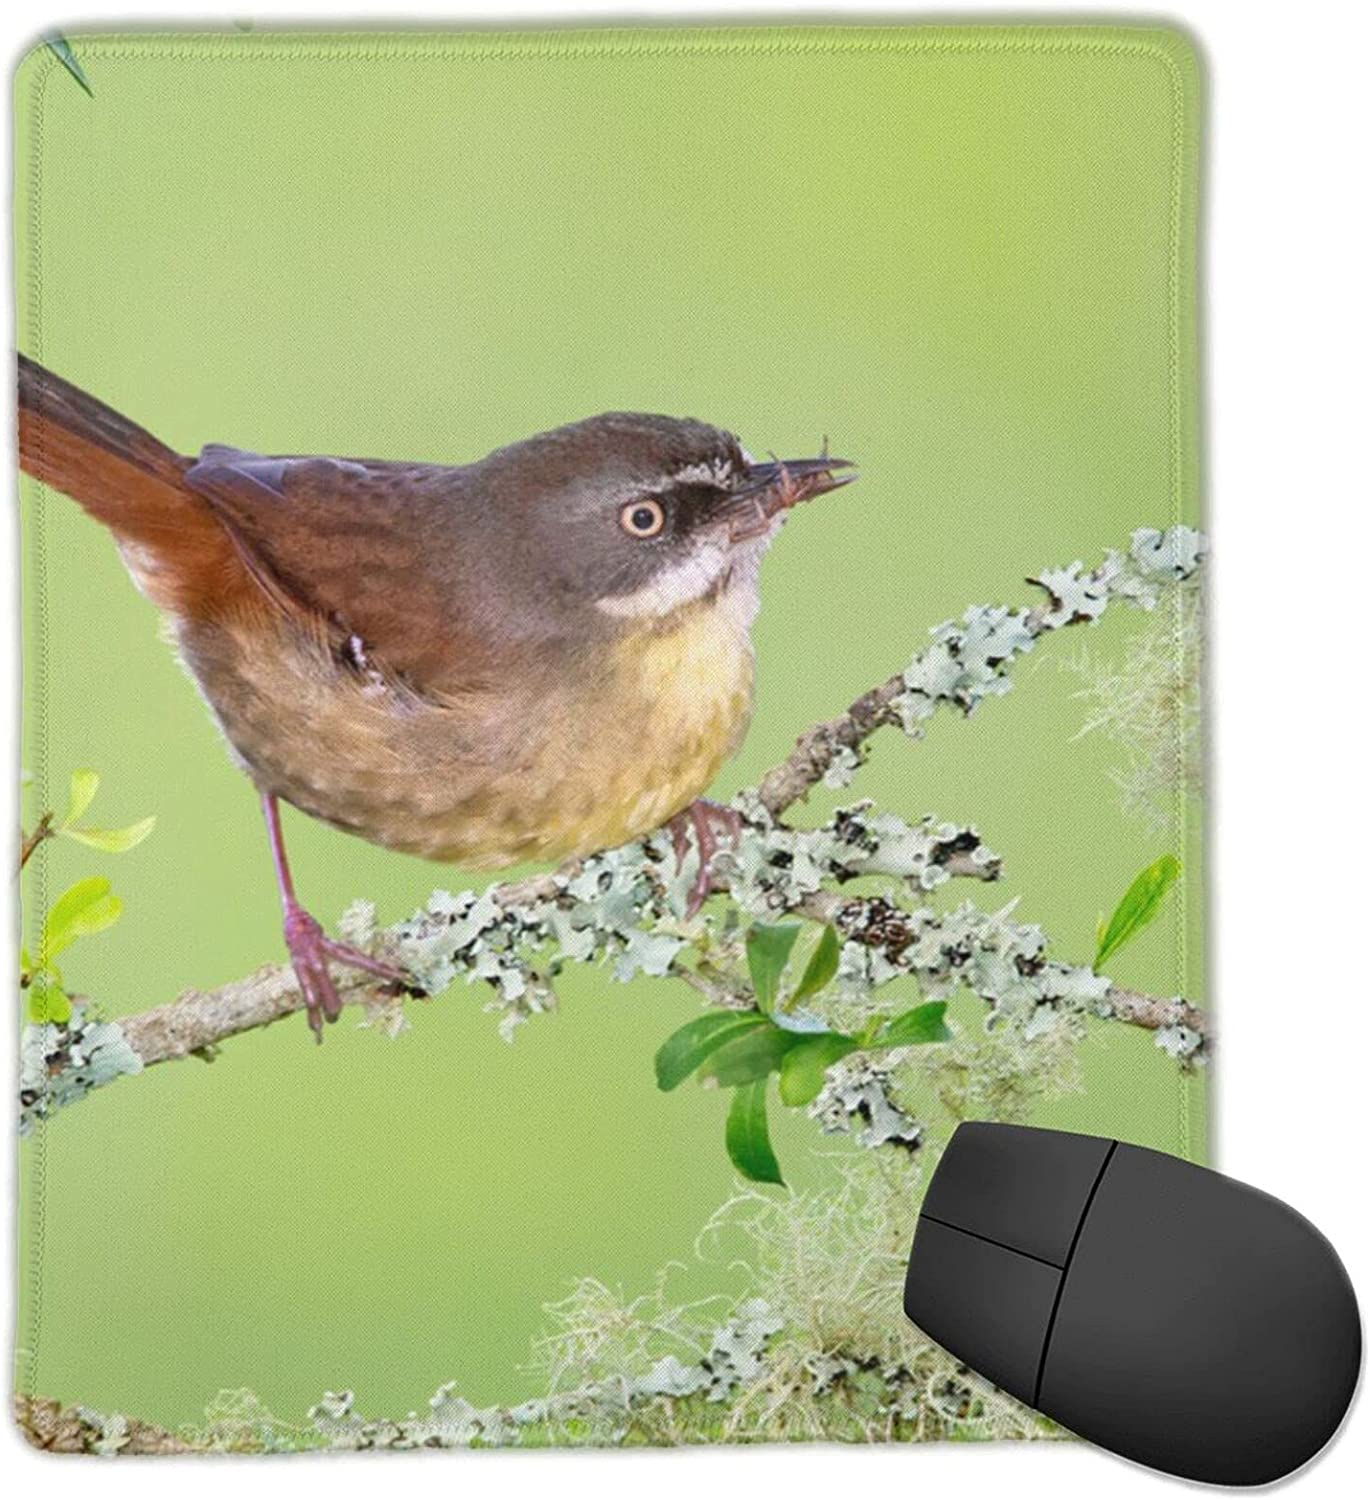 The Bird is Surprise price On Branch Non-Slip for Base Rubber Used Max 70% OFF Computer